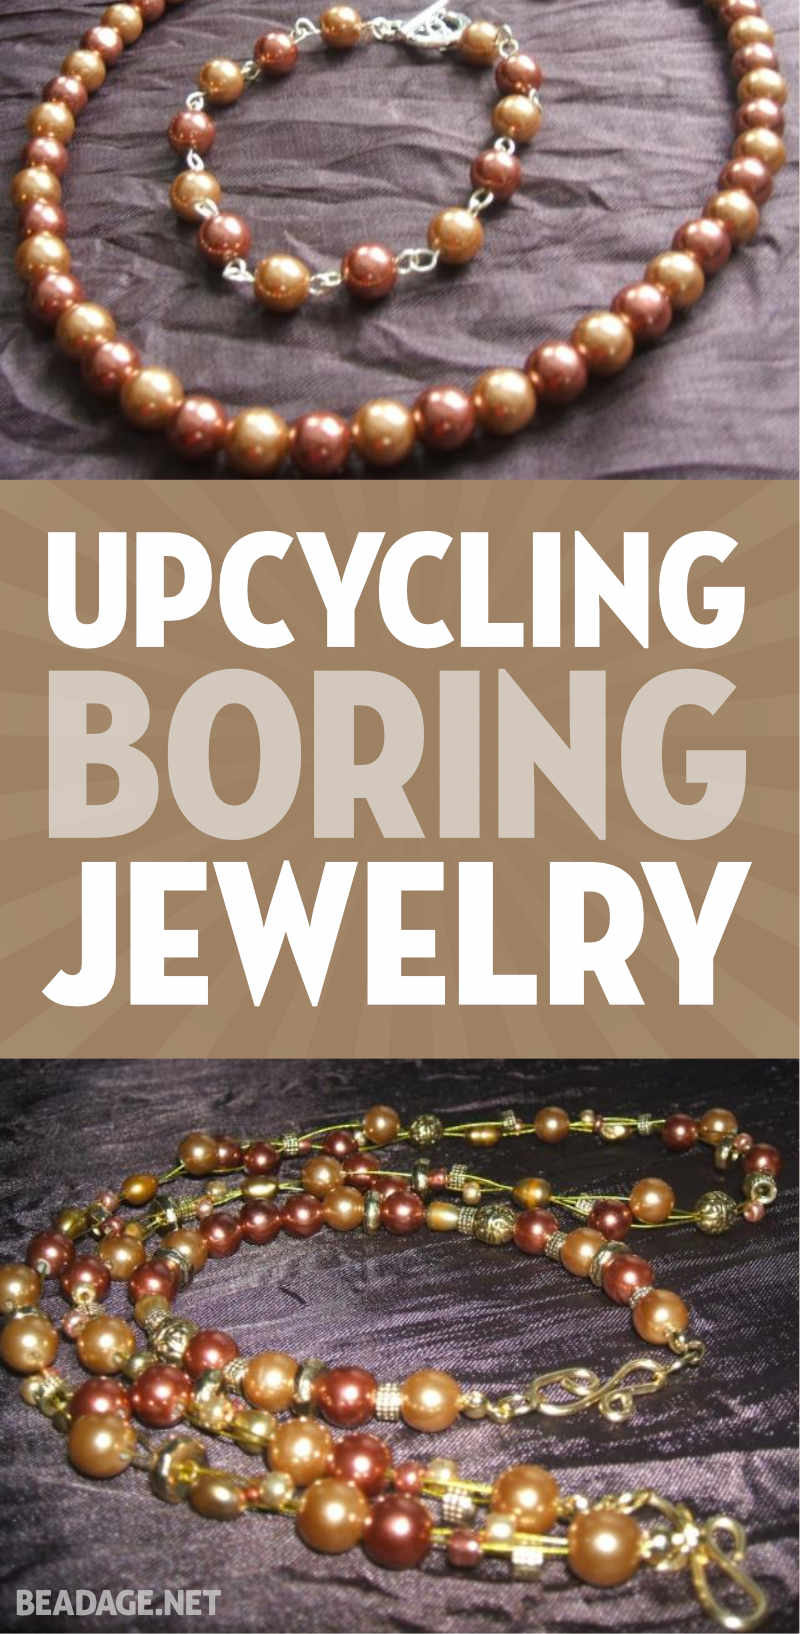 Upcycling Boring Jewelry